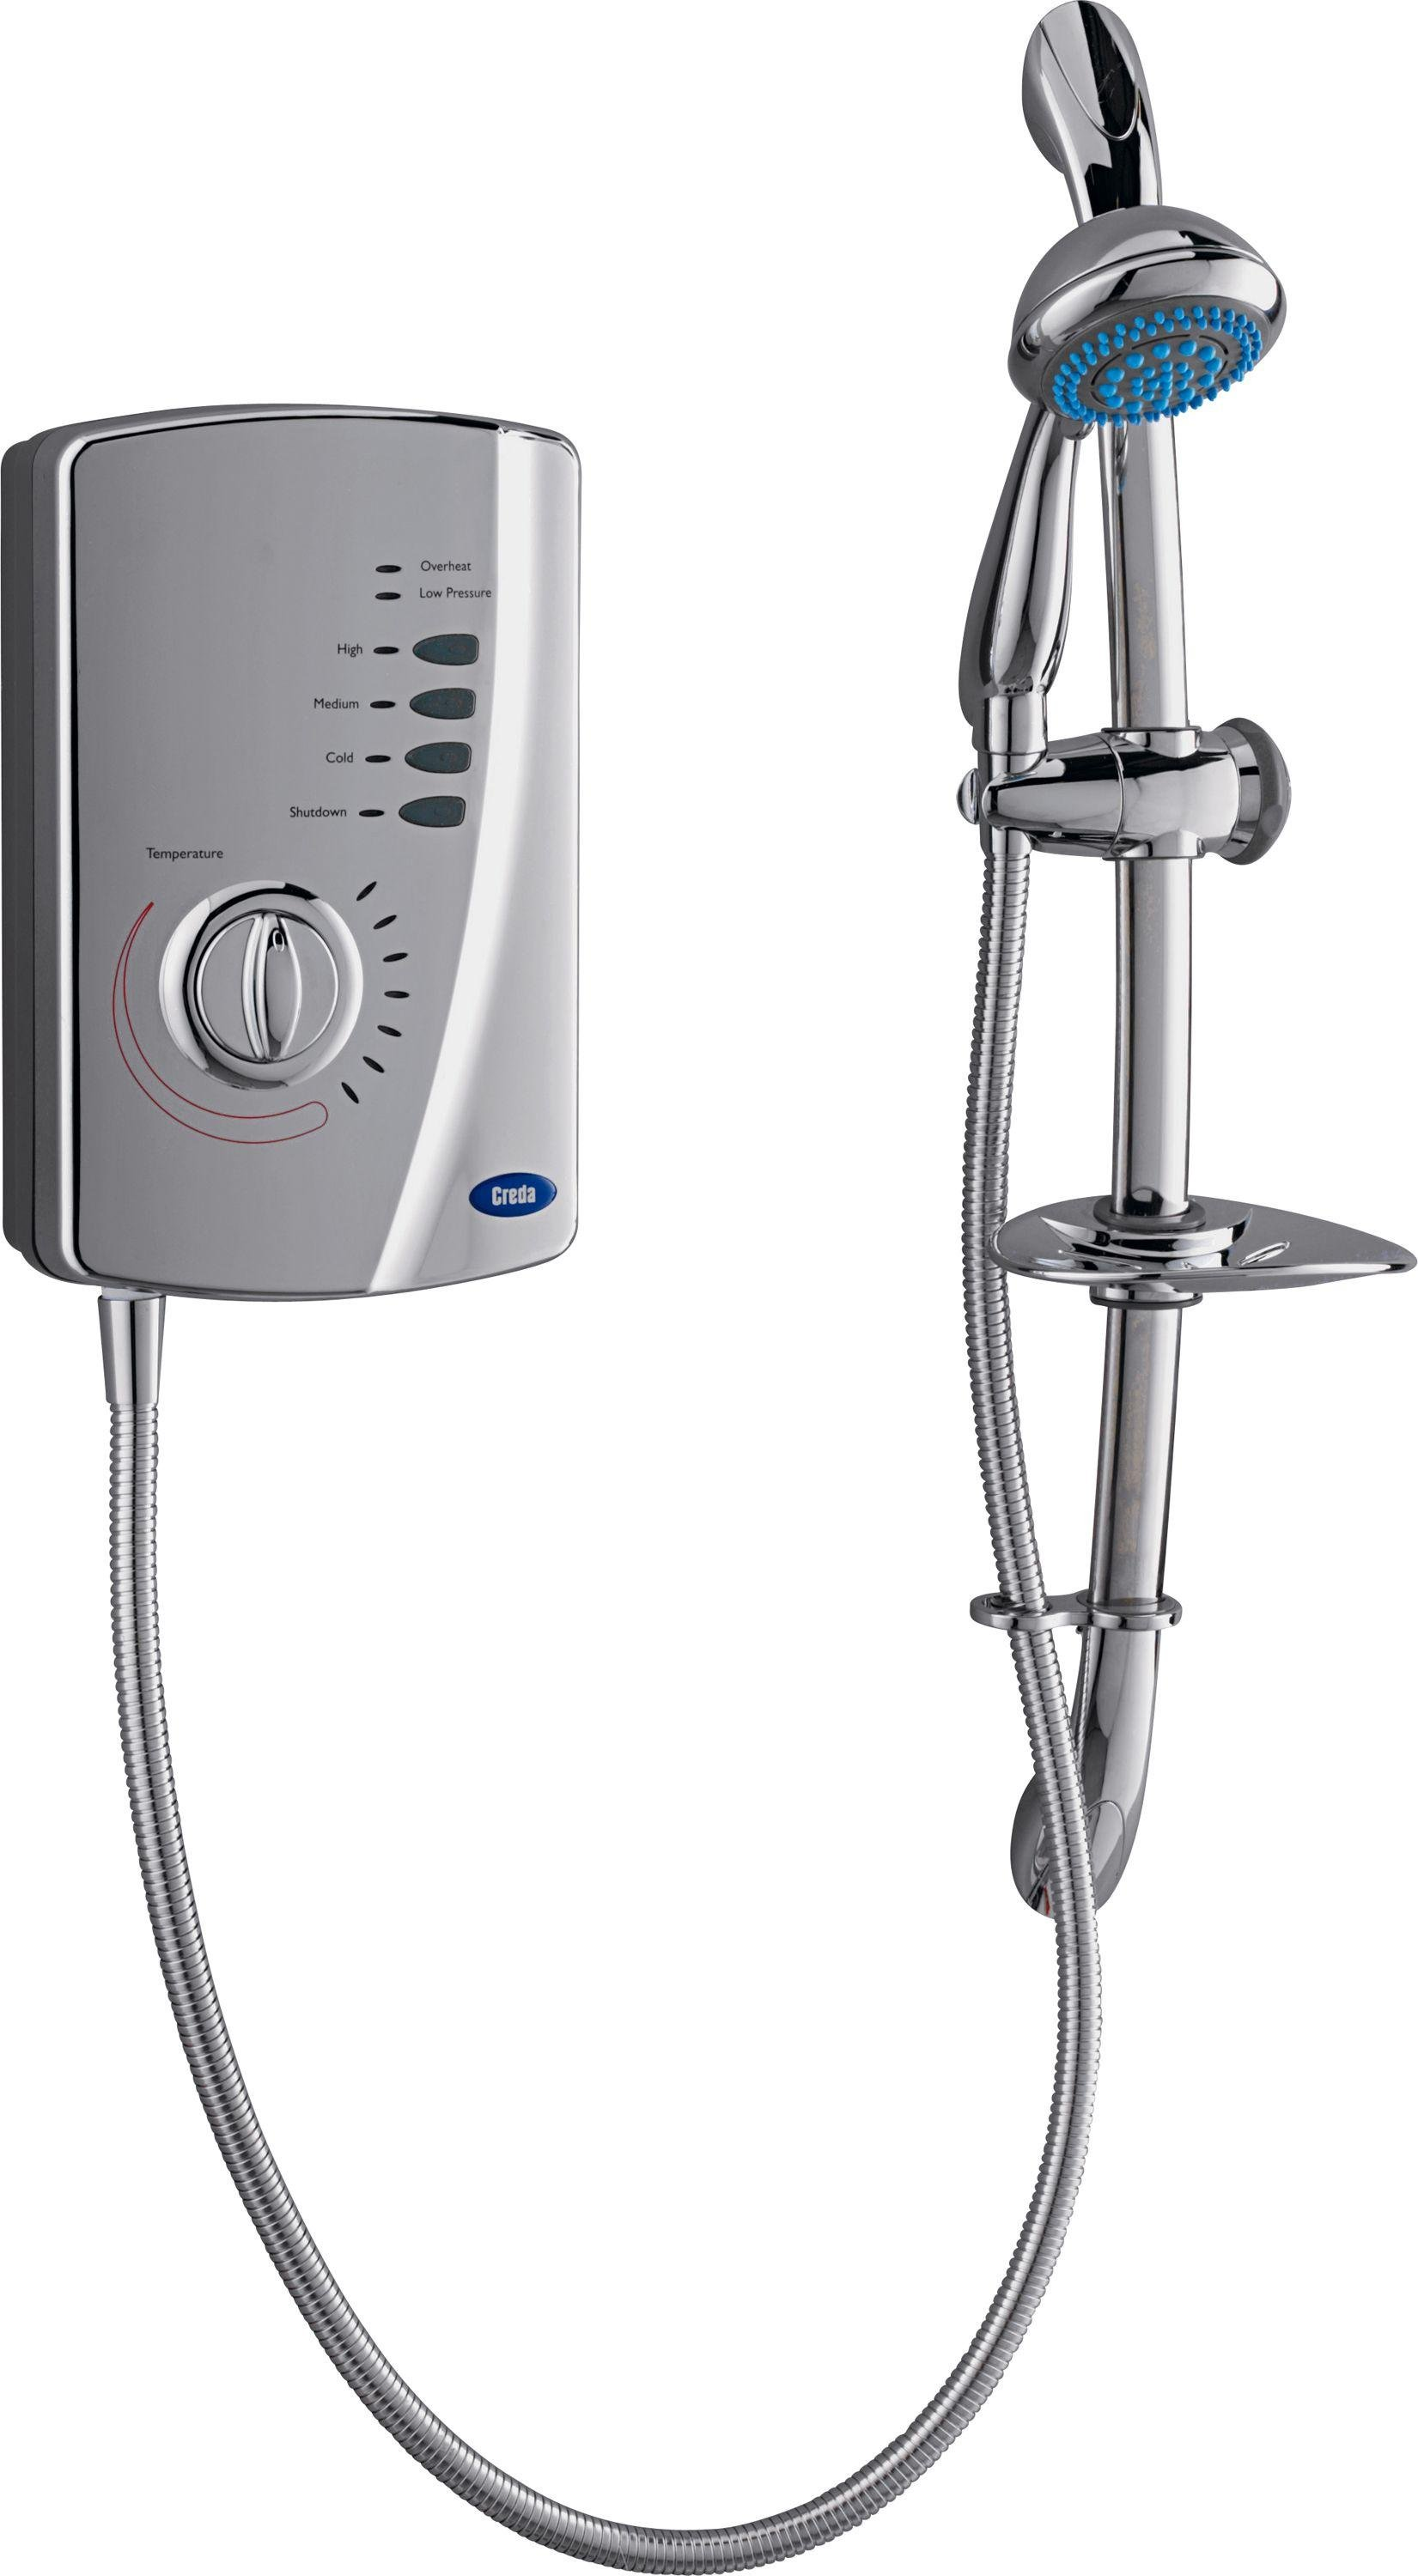 Image of Creda 550C 9.5kW Electric Shower - Chrome